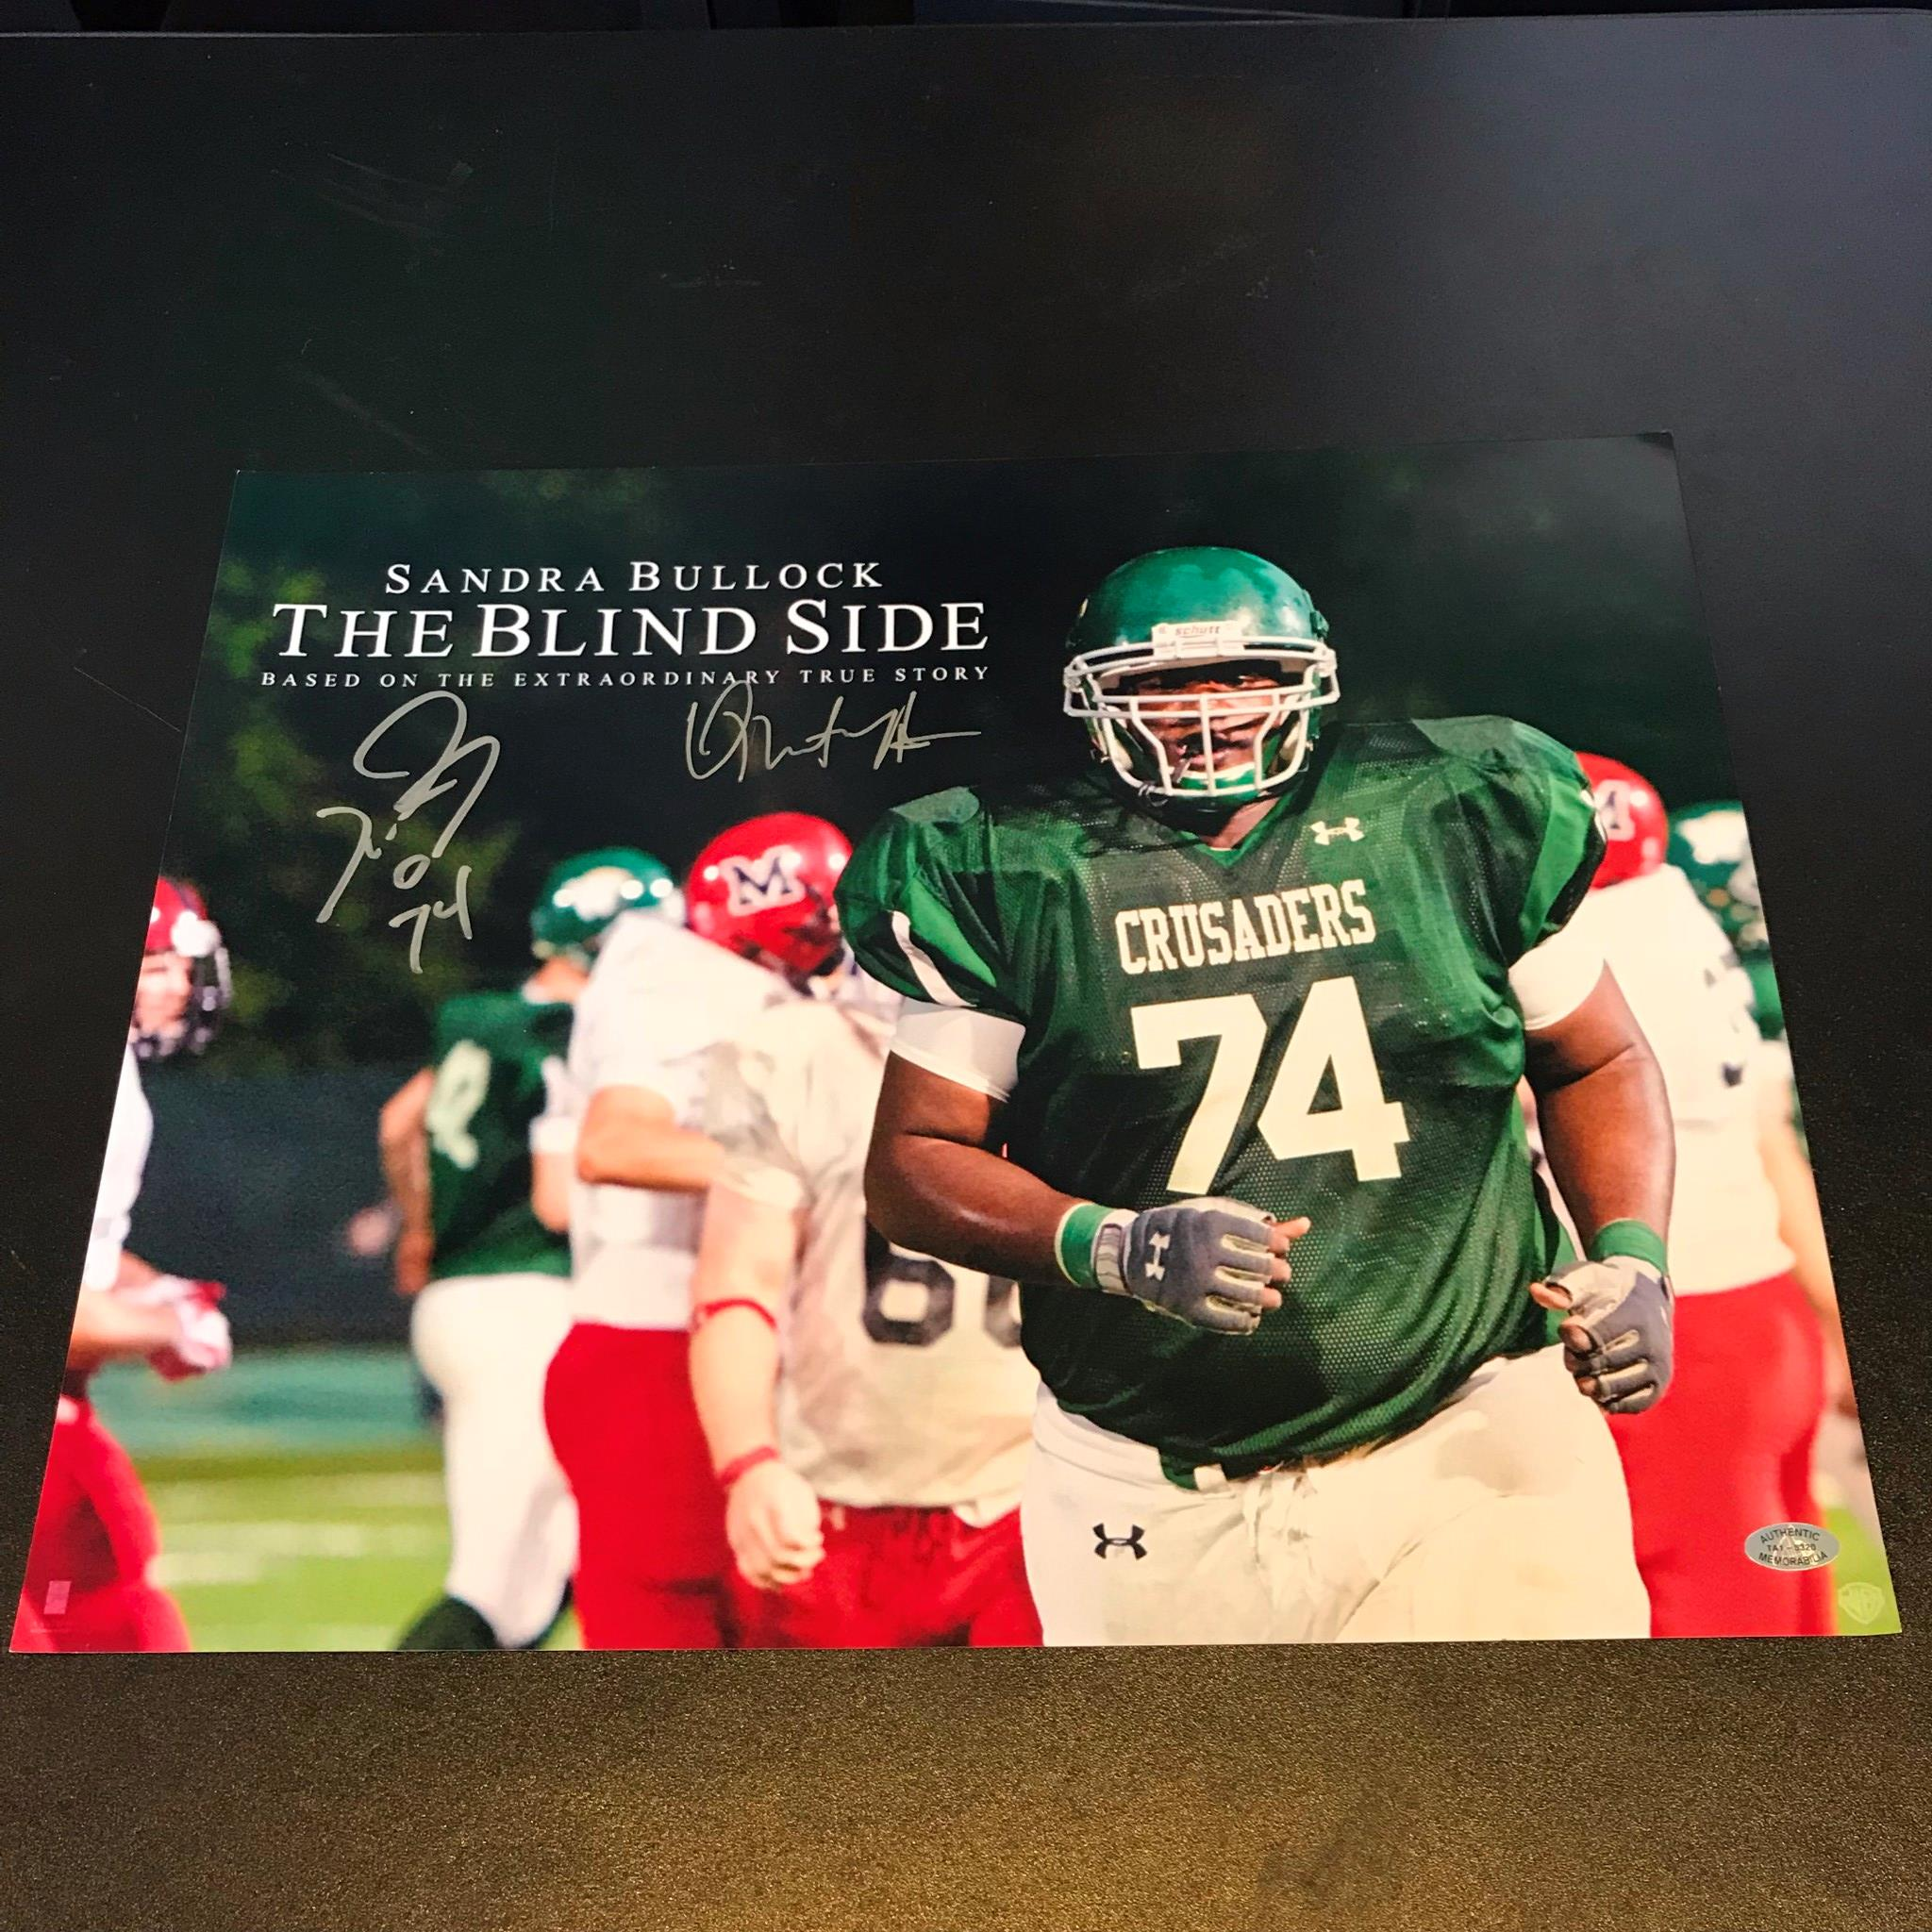 the blind side true story michael oher michael oher quinton aaron signed x the blind side movie photo